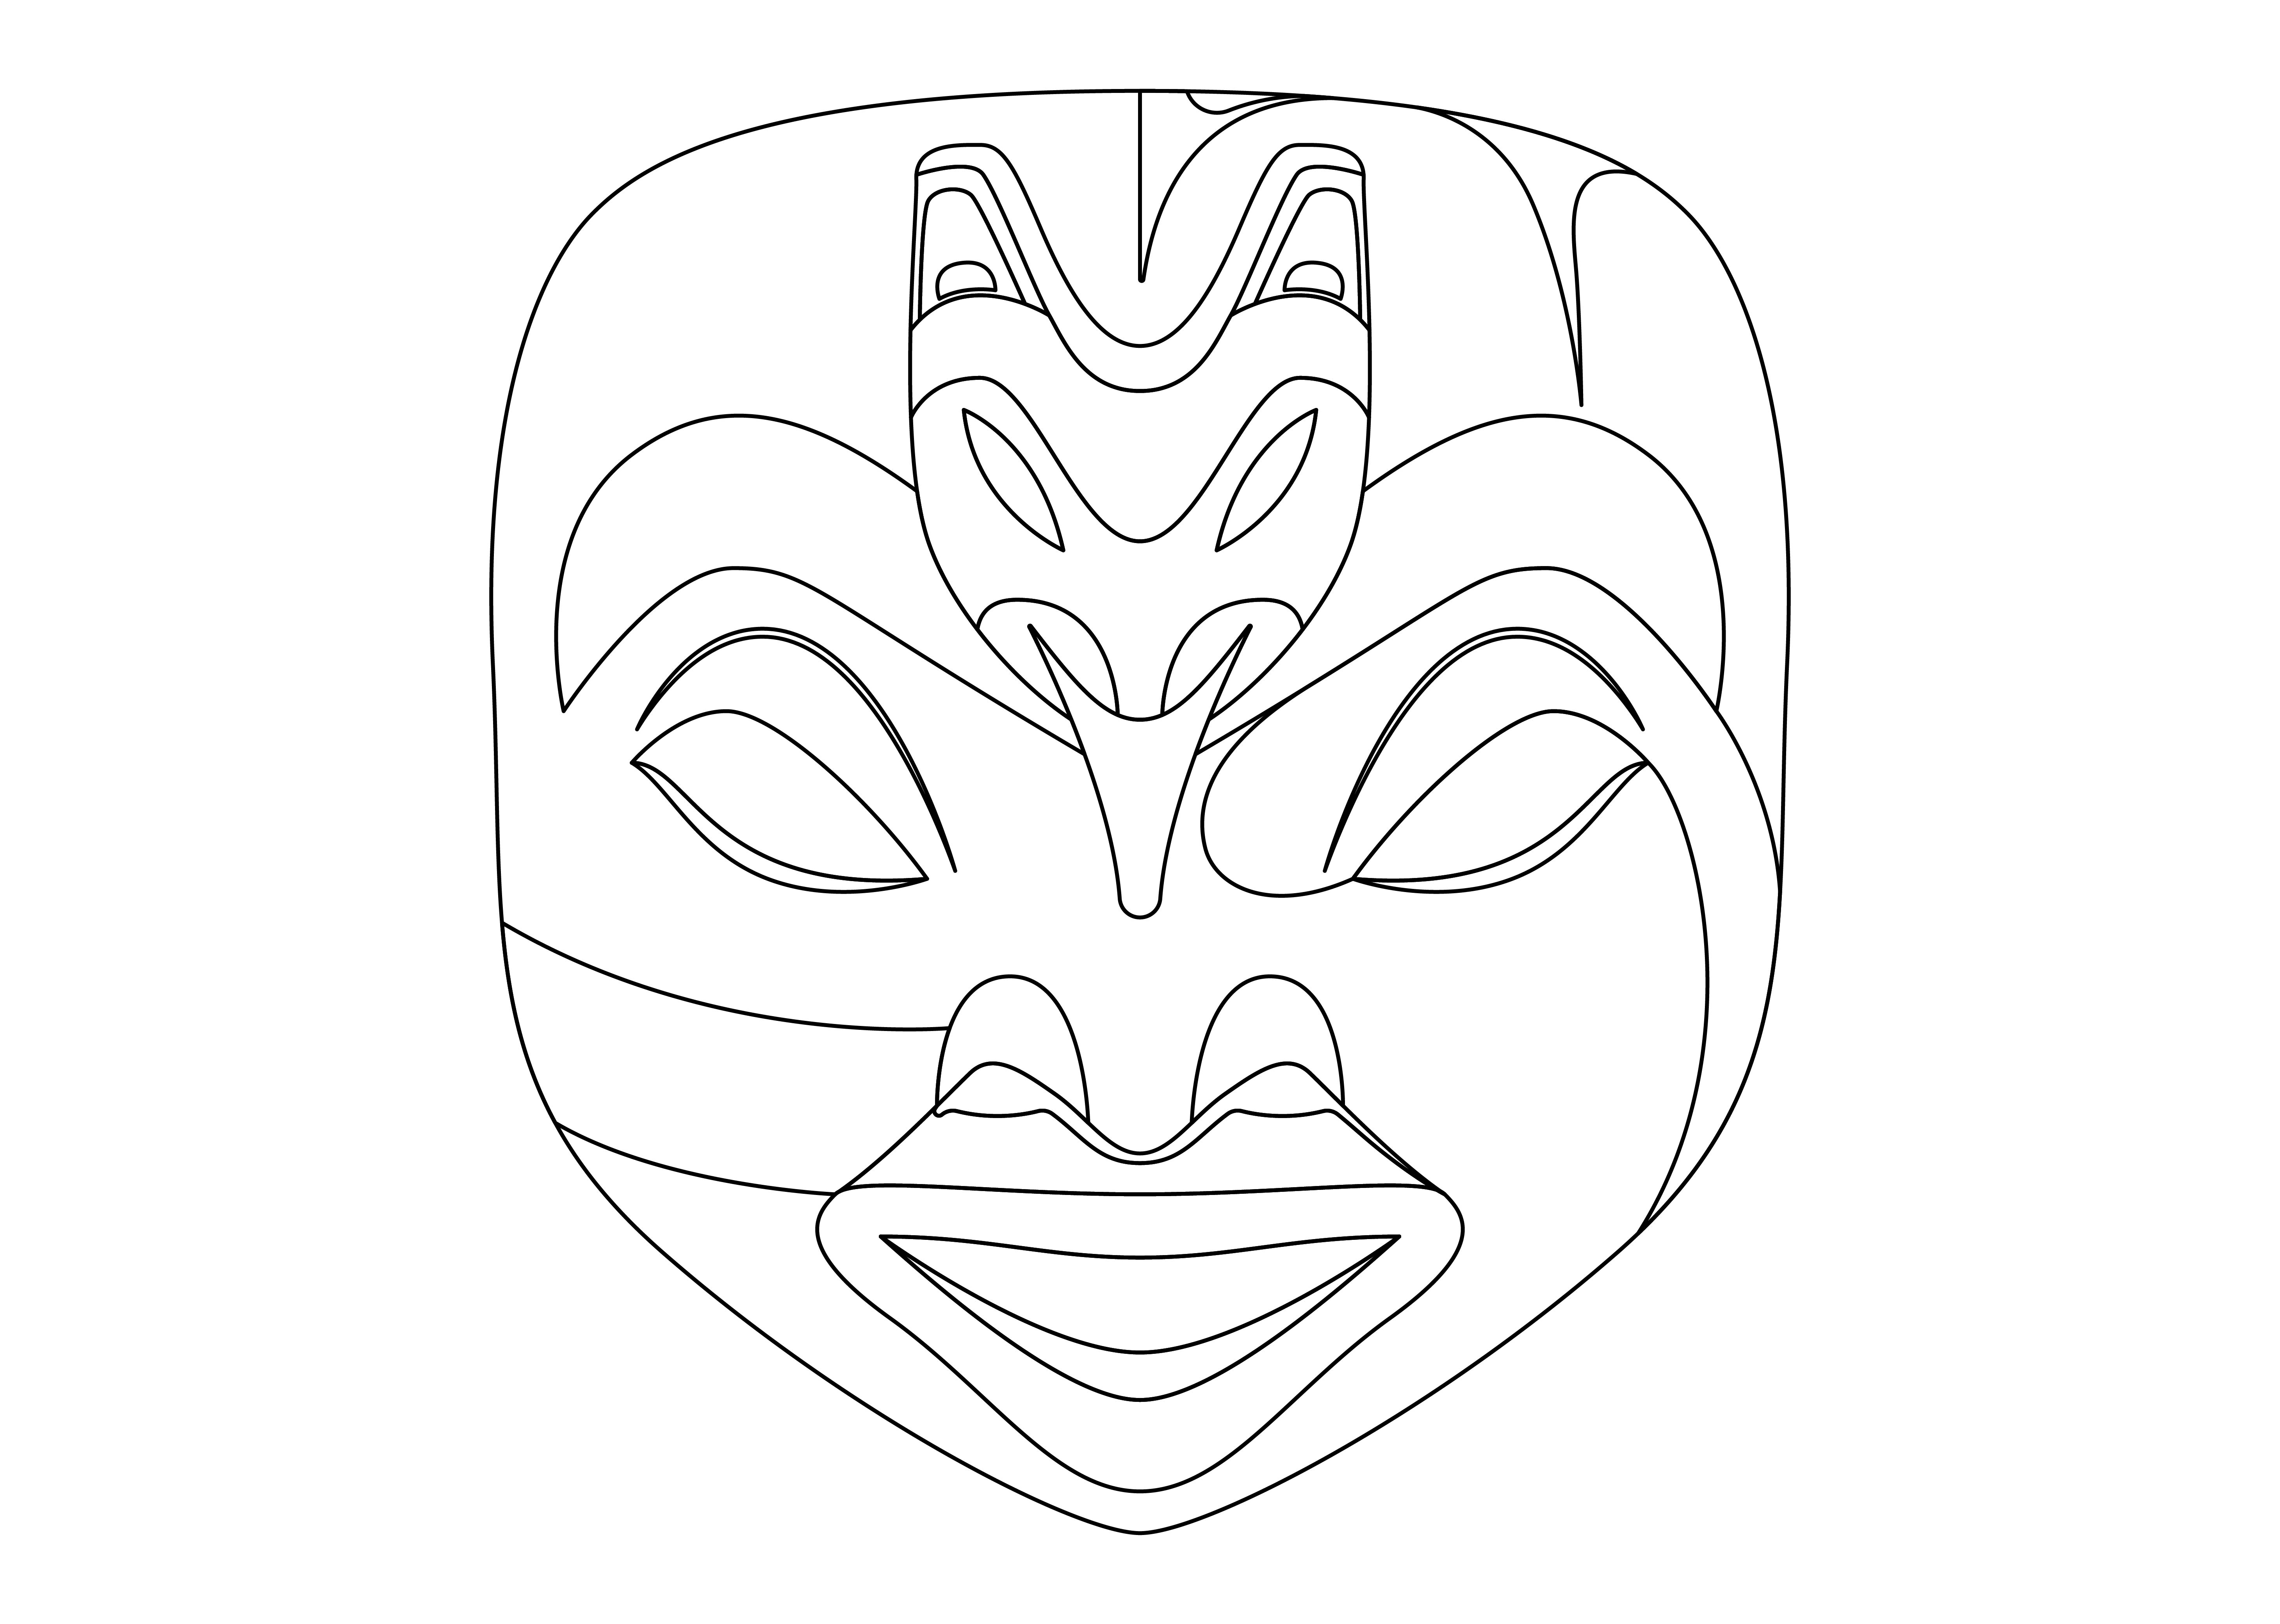 Download Free Ethnic Mask Black 1 Graphic By Studioisamu Creative Fabrica for Cricut Explore, Silhouette and other cutting machines.